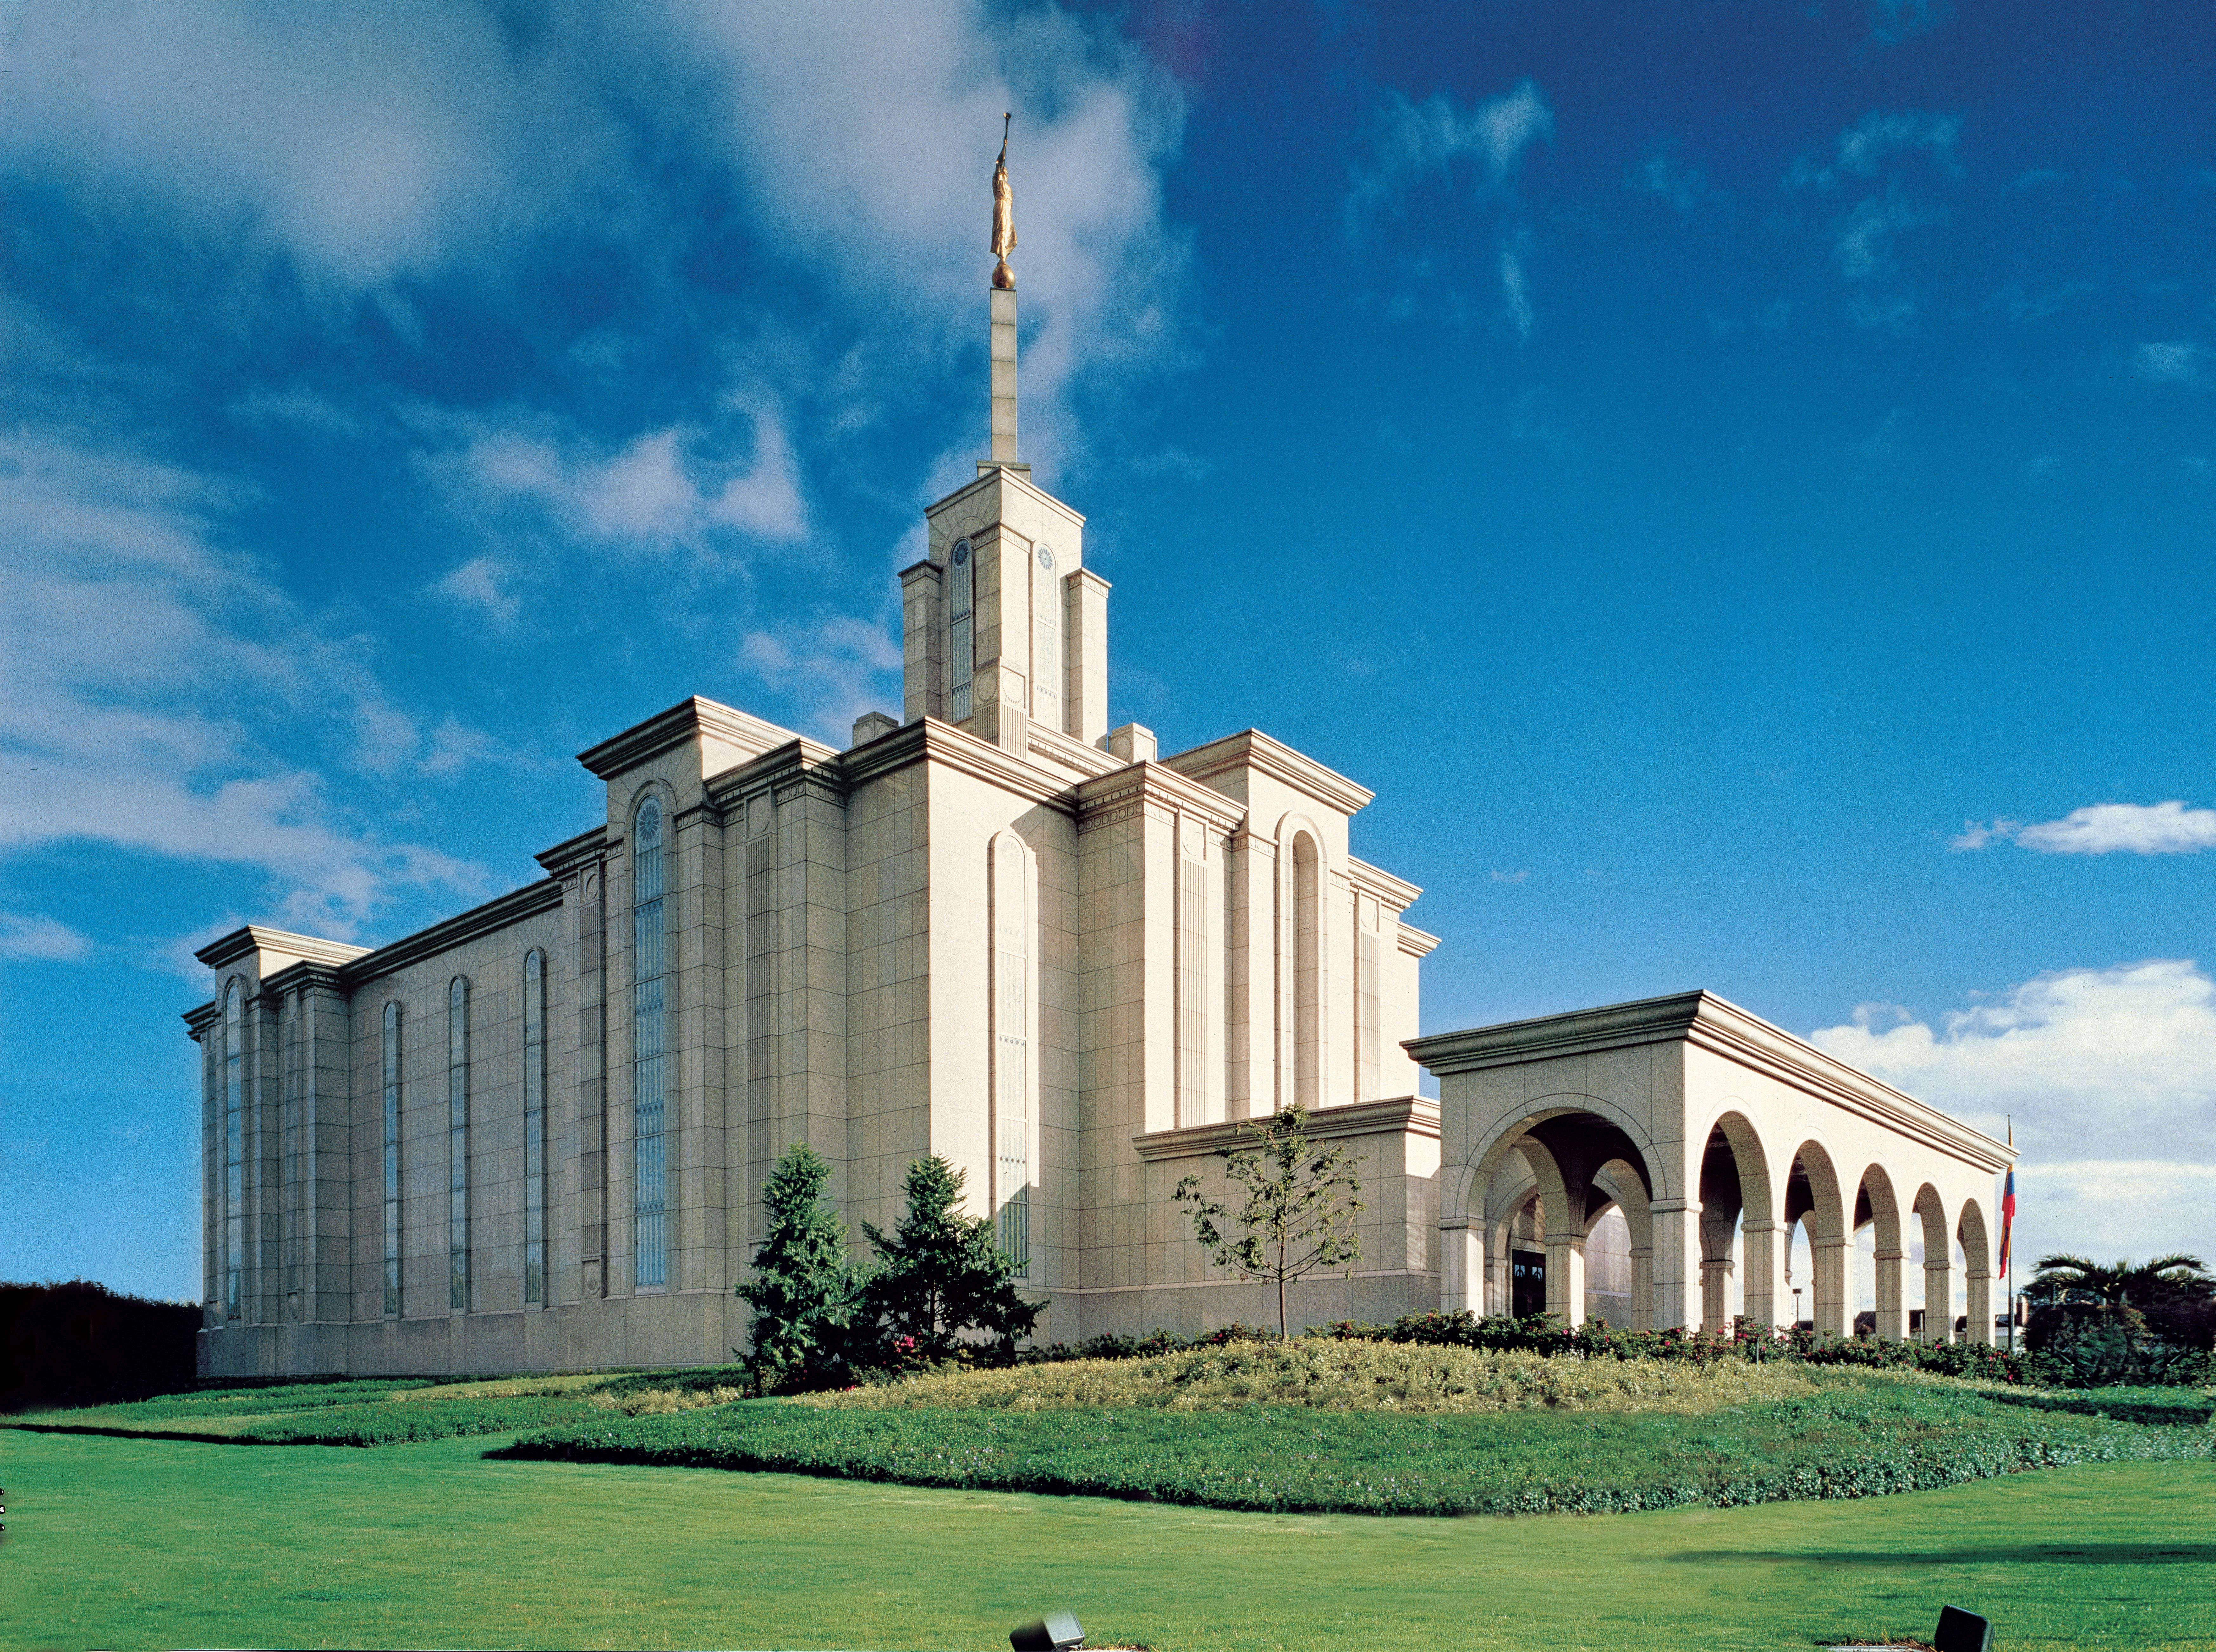 The exterior of the Bogotá Colombia Temple.